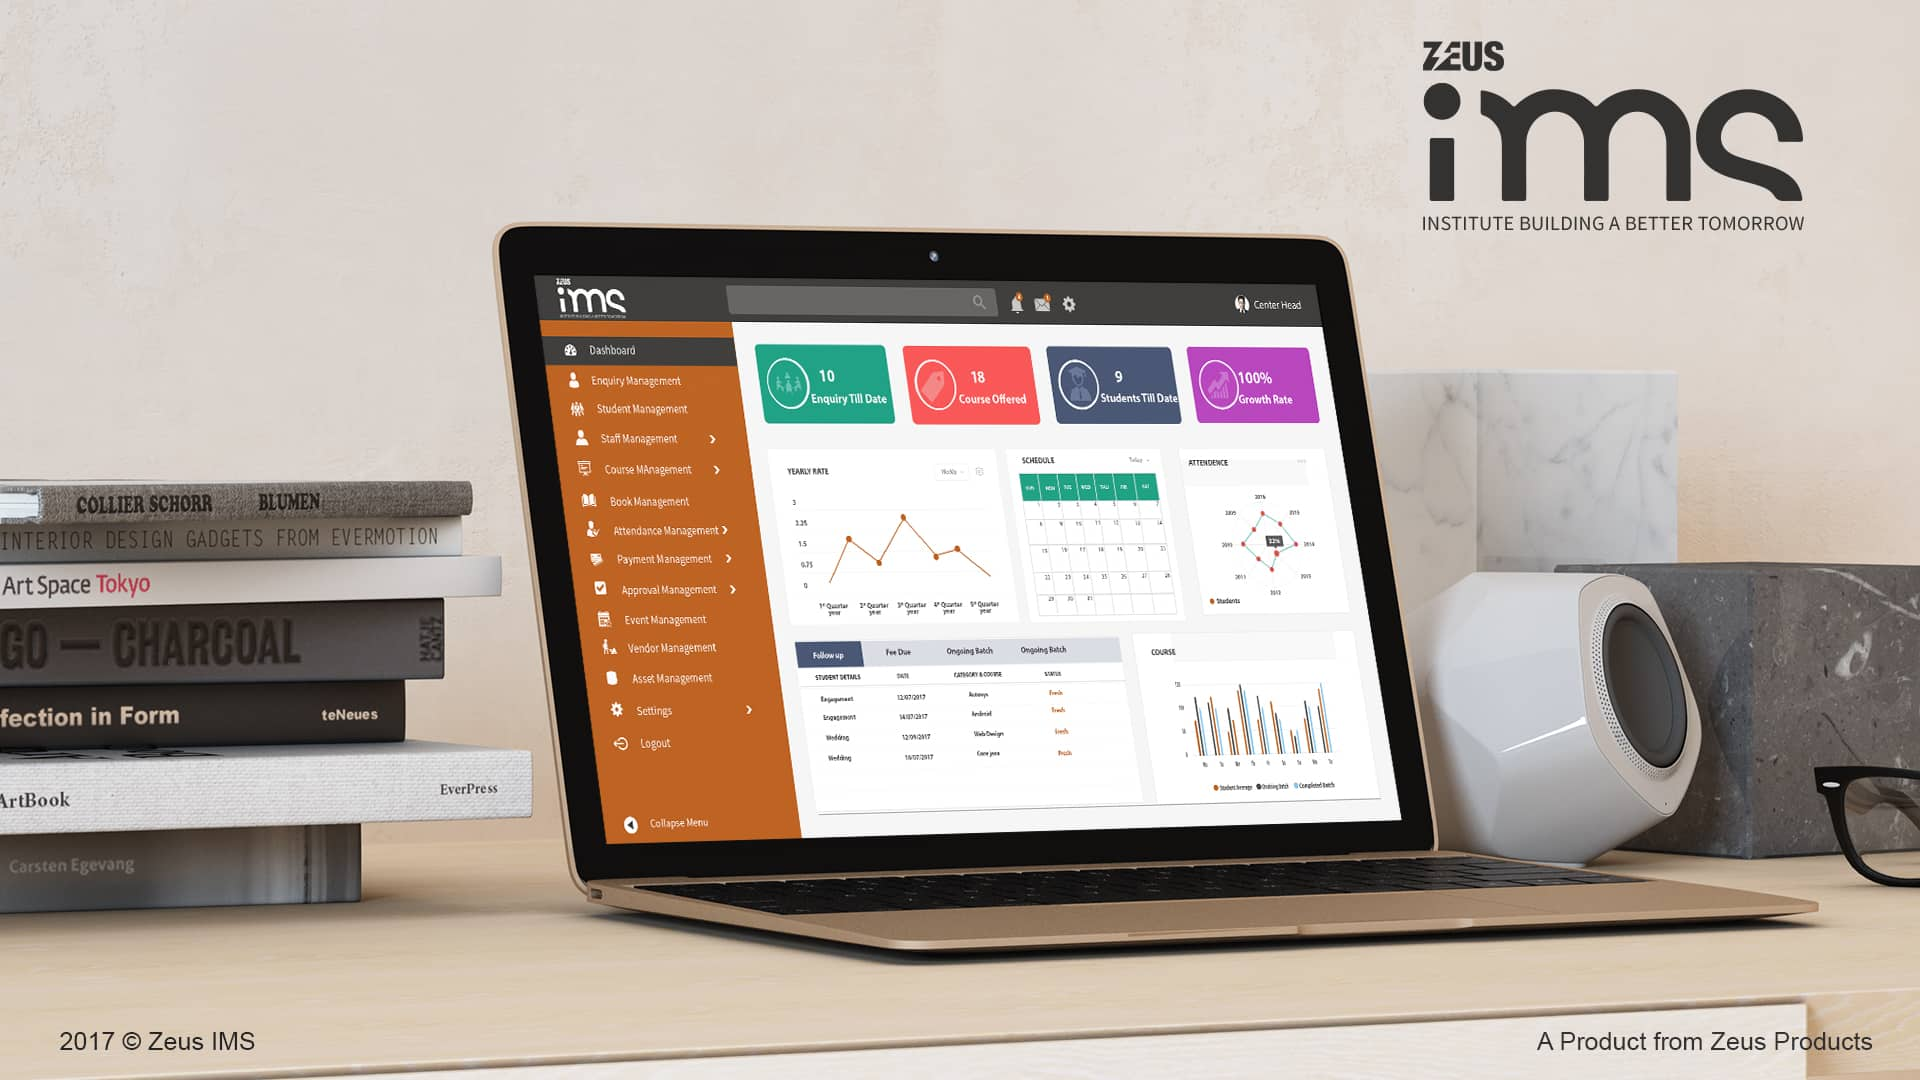 Zeus IMS Mock up CRM Tools